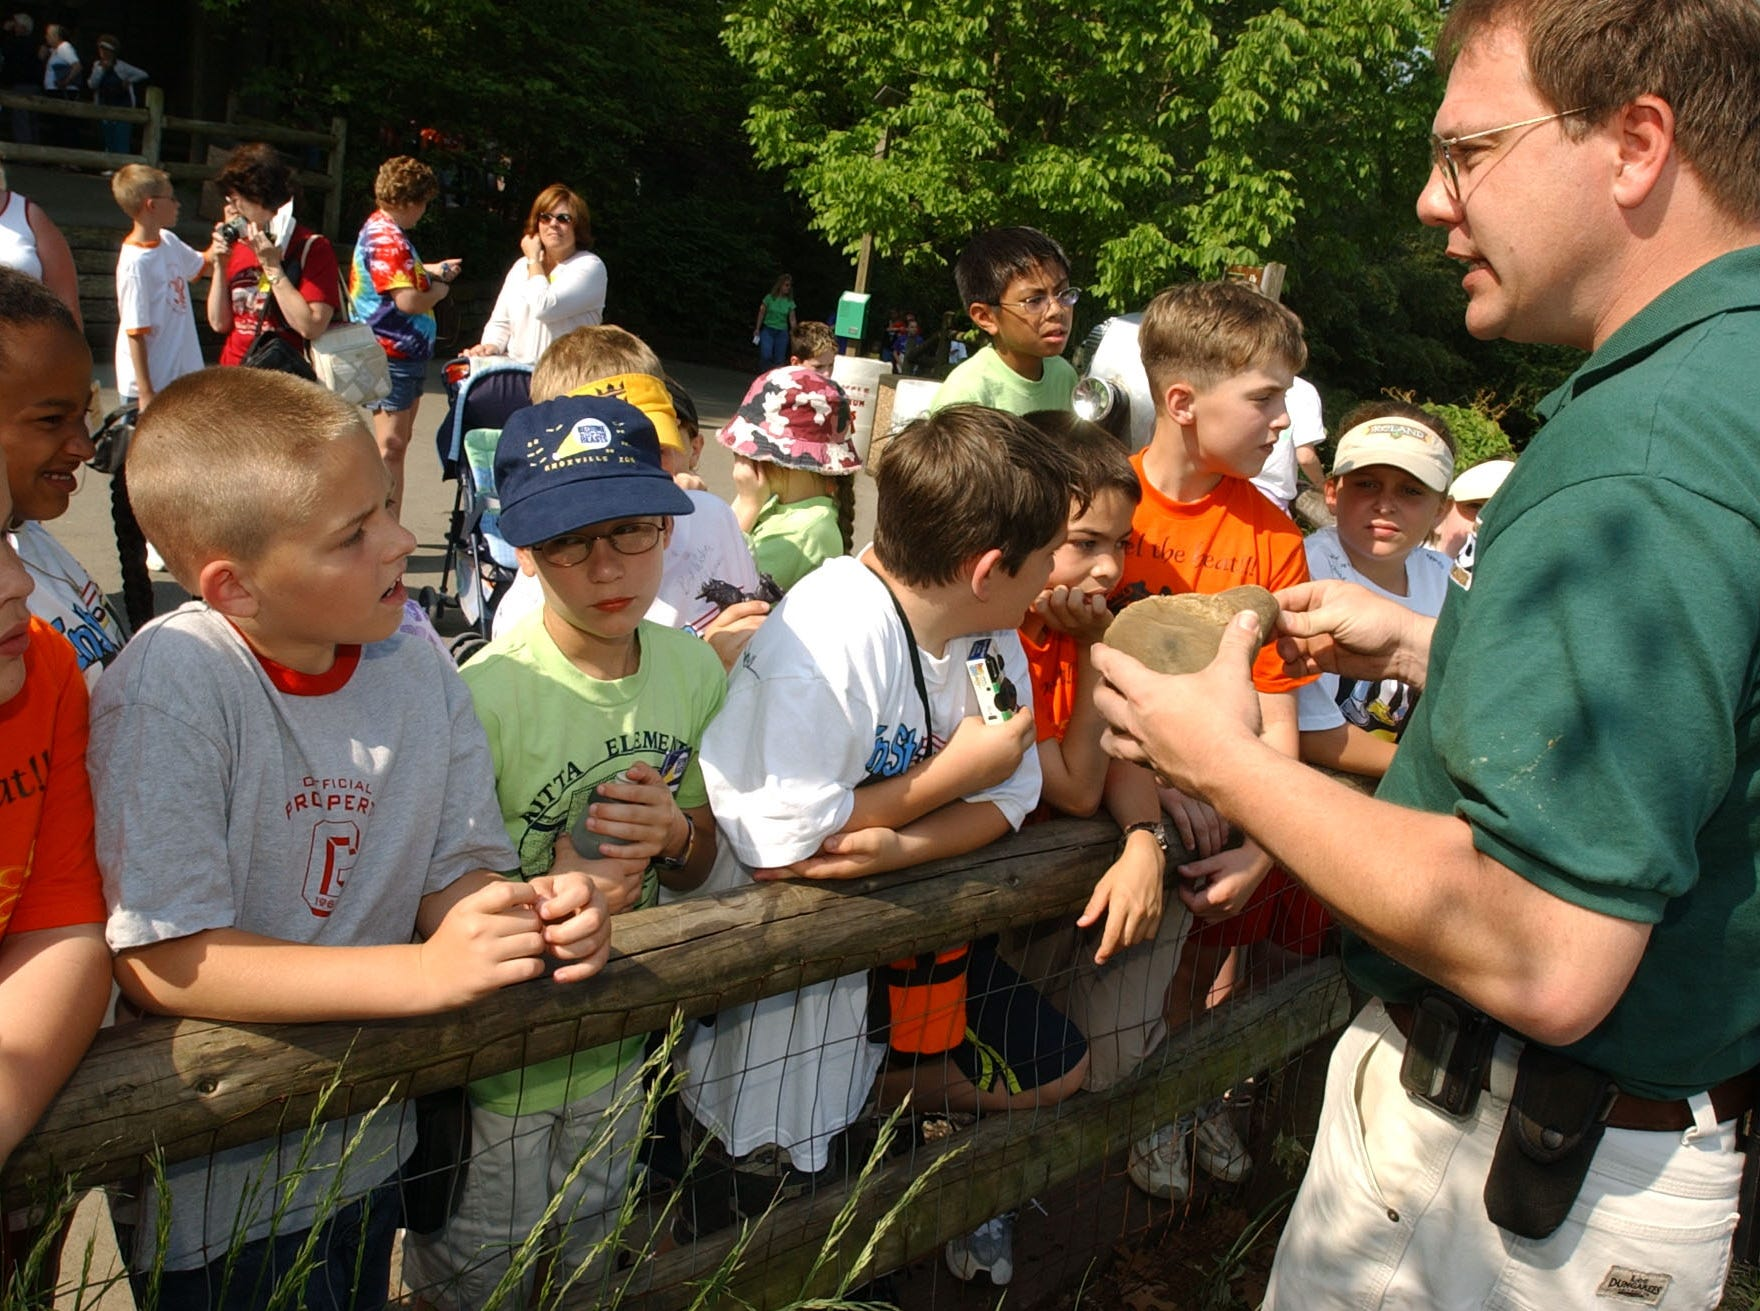 Austin Love, left, and his classmates from Ritta Elementary School listen to curator Terry Cannon, right, explain about Rinos at the Knoxville Zoo.  Students at Ritta raised $1,200 through an inschool reading project to adopt 17 animals at the zoo. The rhino was adopted because Love's father served in the Persian Gulf as a Navy diver in a unit nicknamed Rhino.